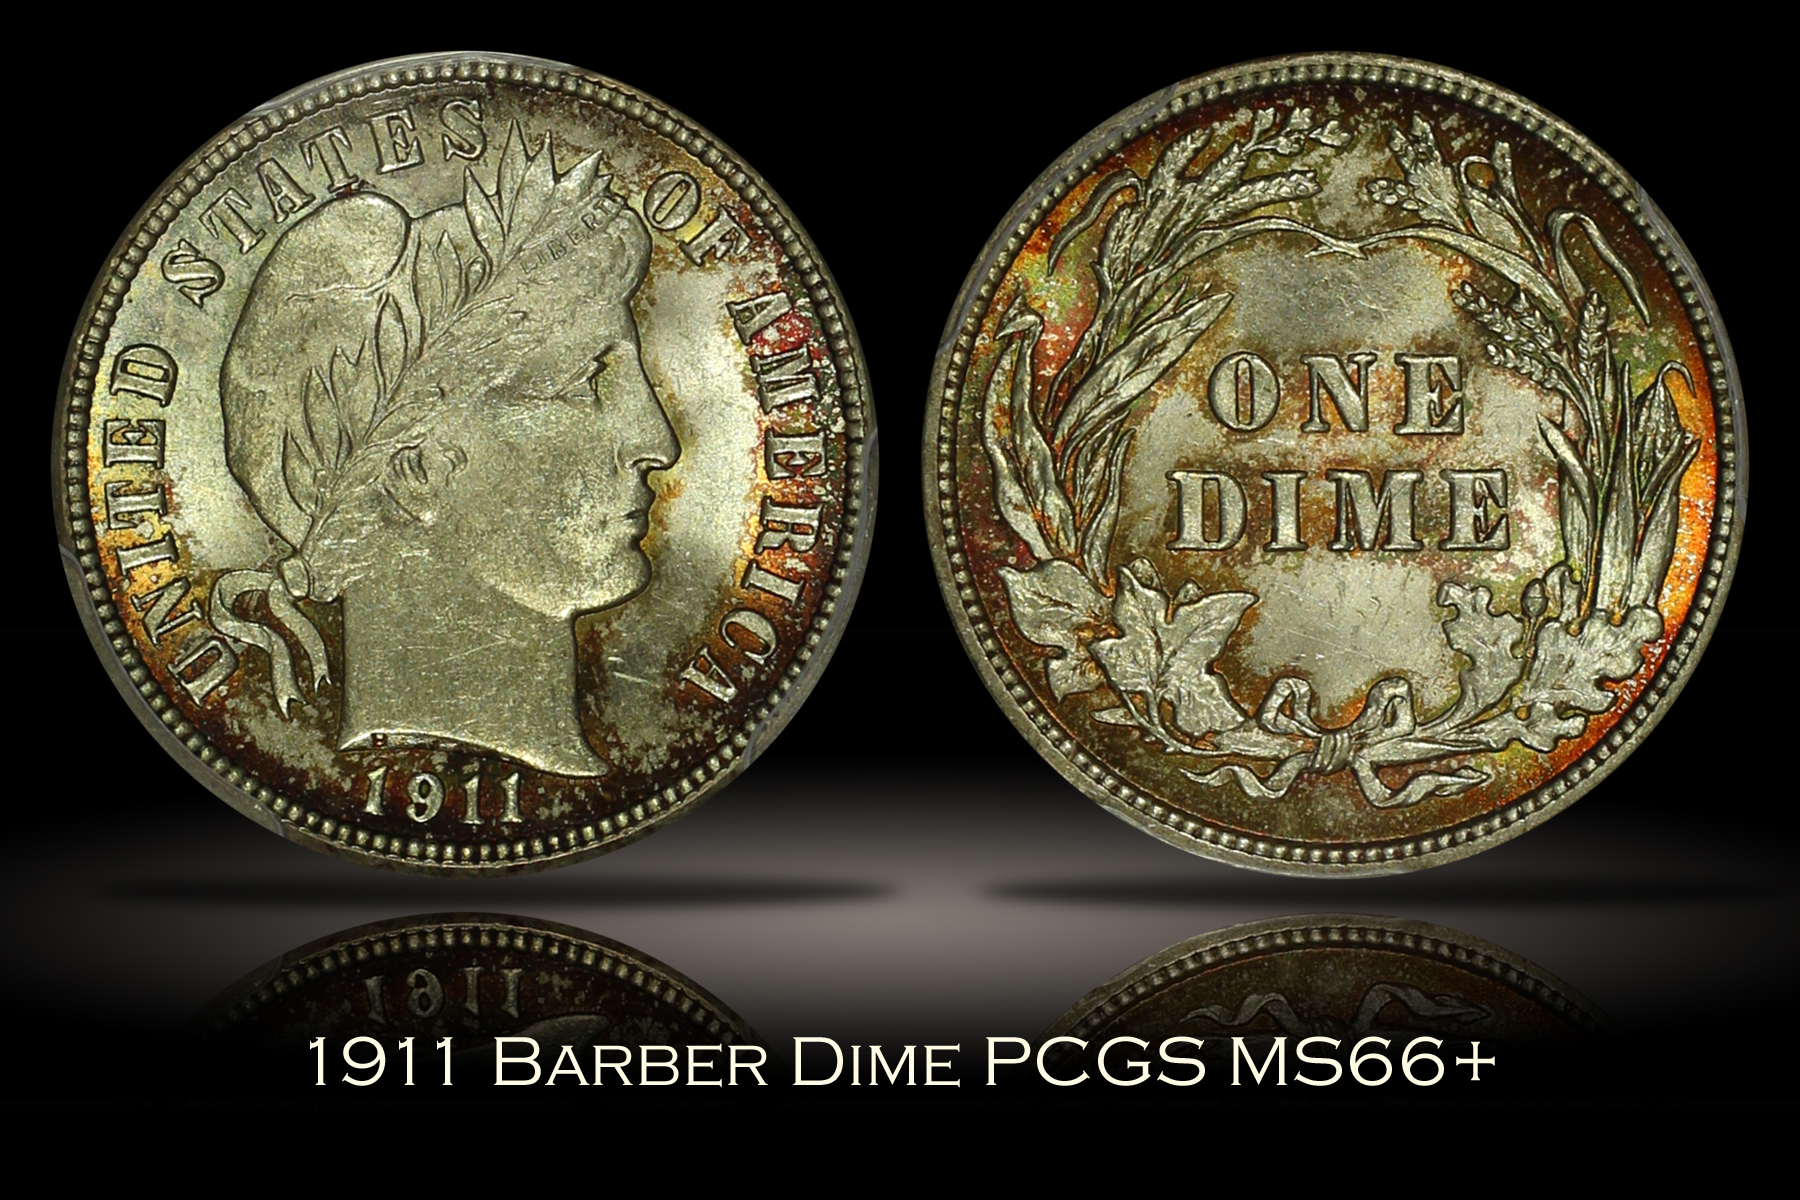 1911 Barber Dime PCGS MS66+